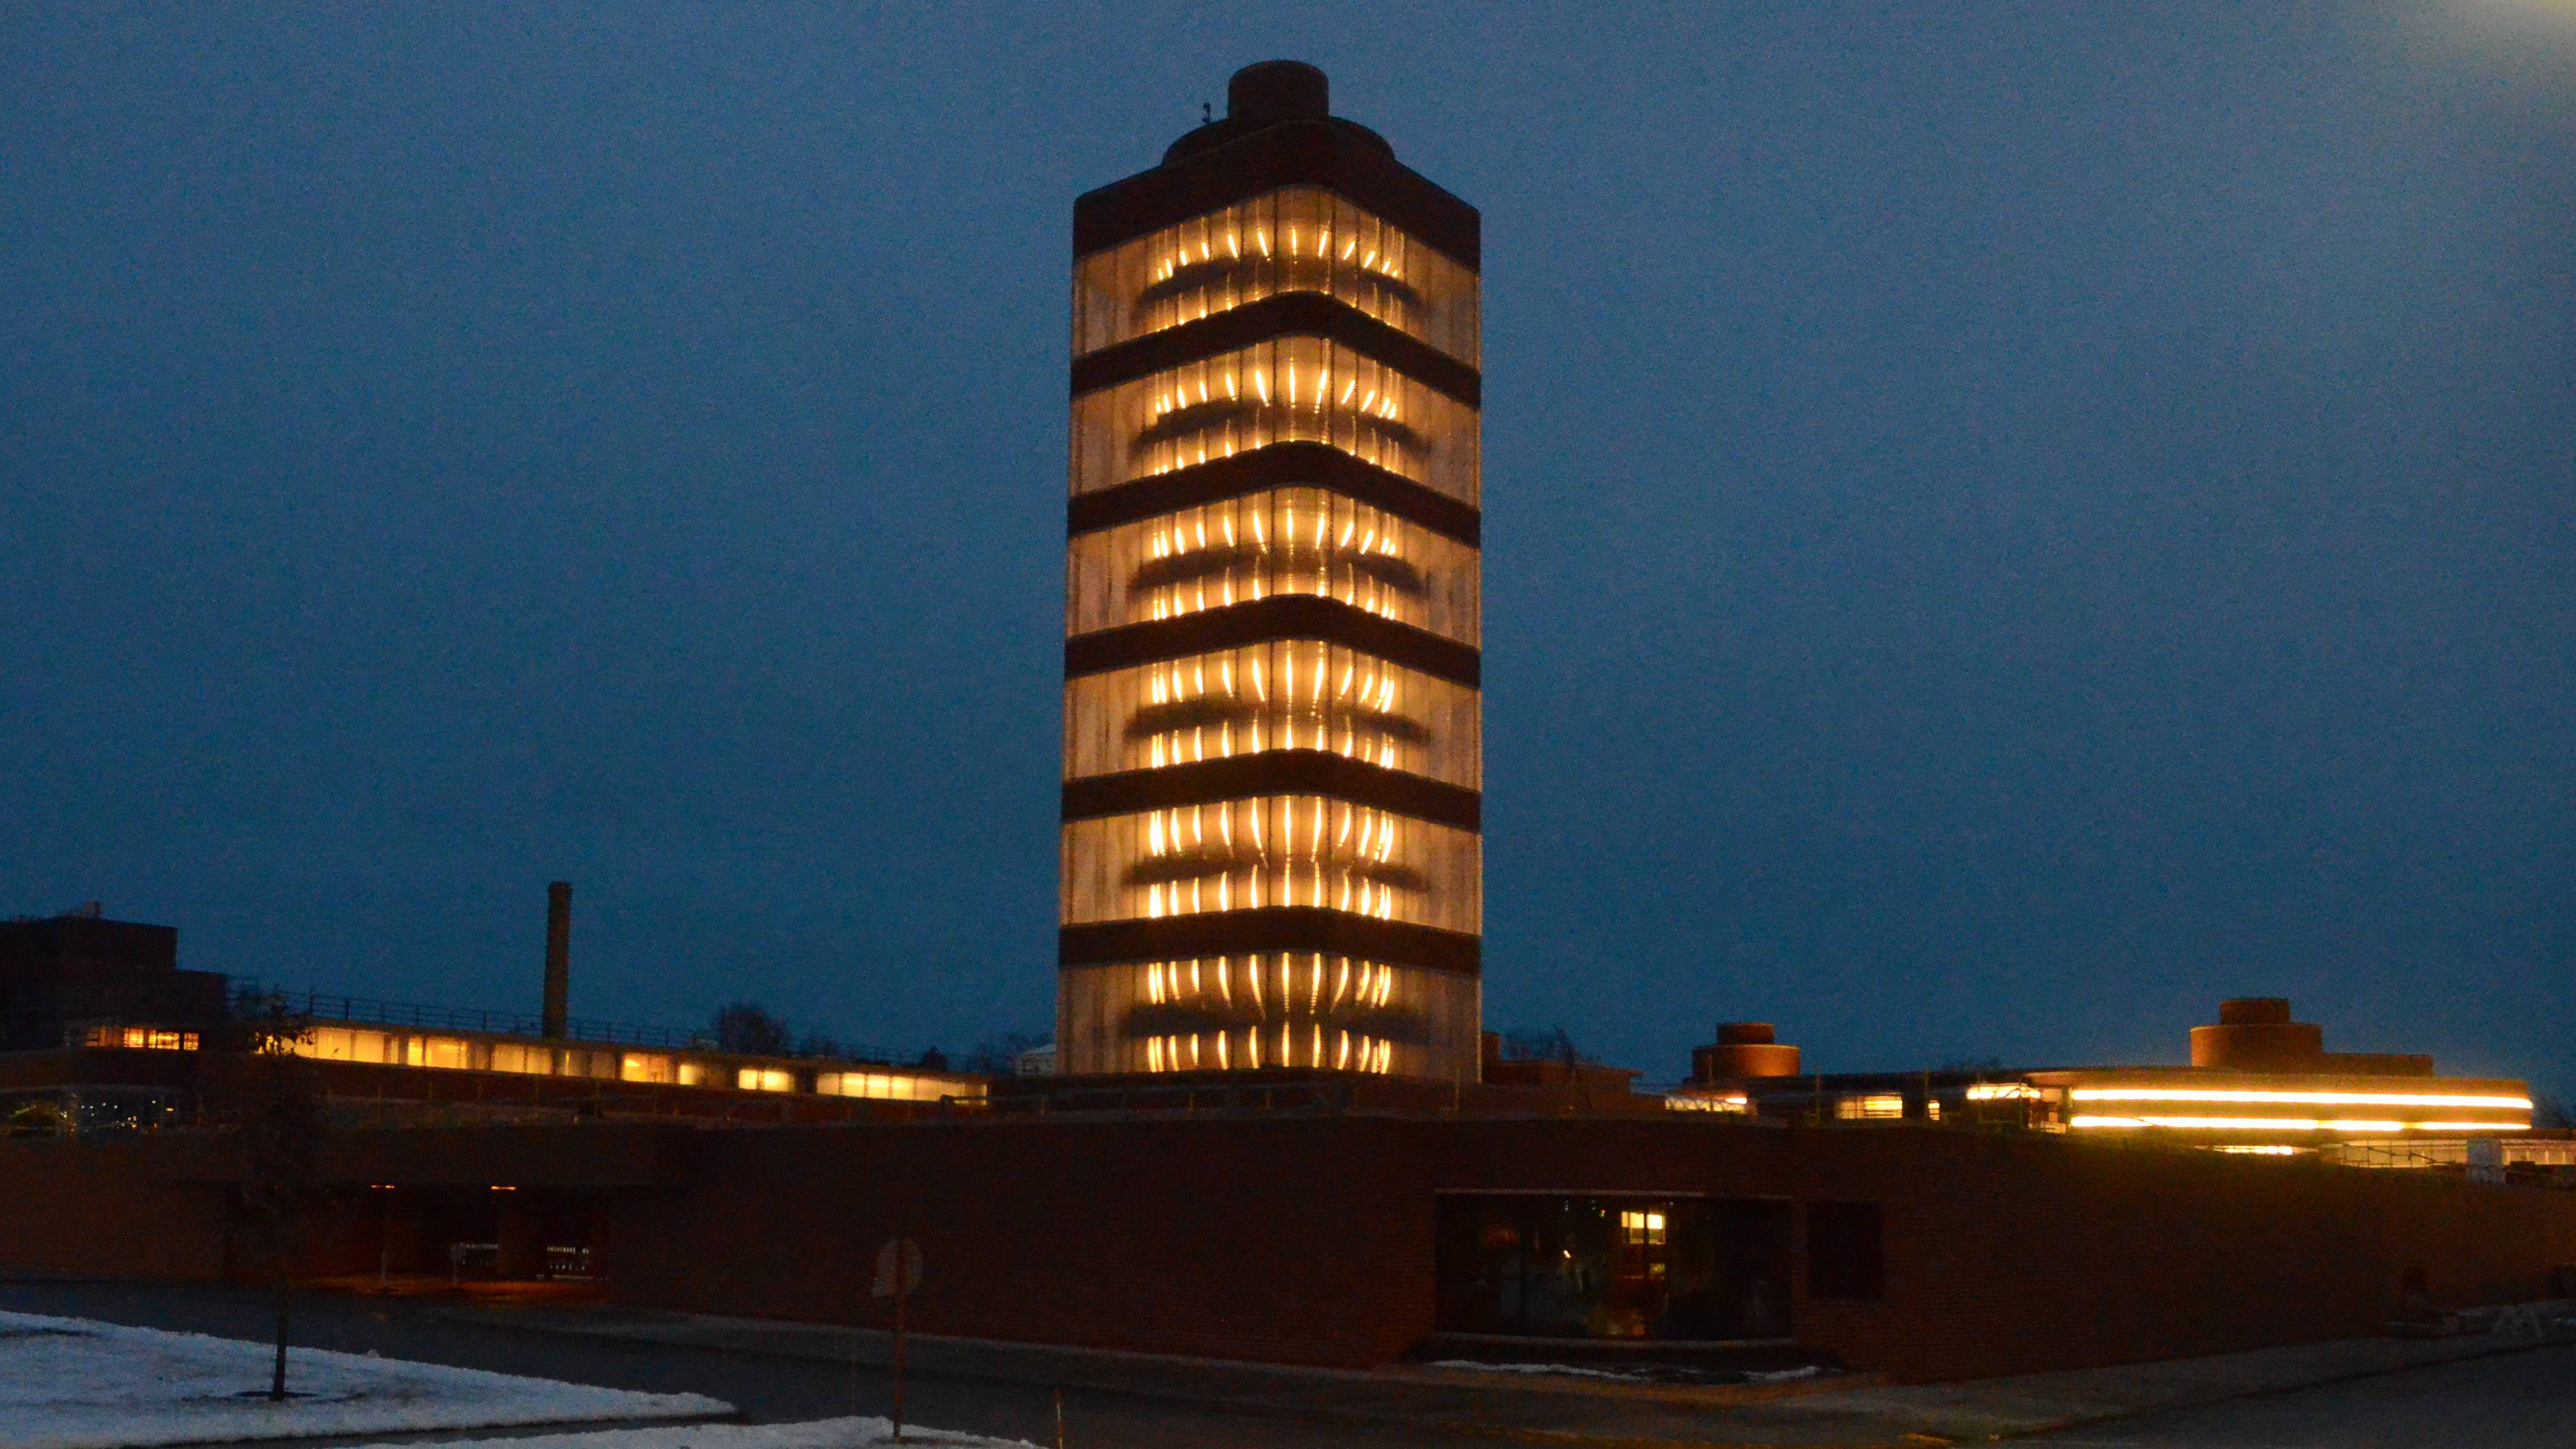 After a five-year, $30 million renovation, the SC Johnson Research Tower in Racine, Wis., designed by Frank Lloyd Wright will be open for public tours for the first time starting May 2.